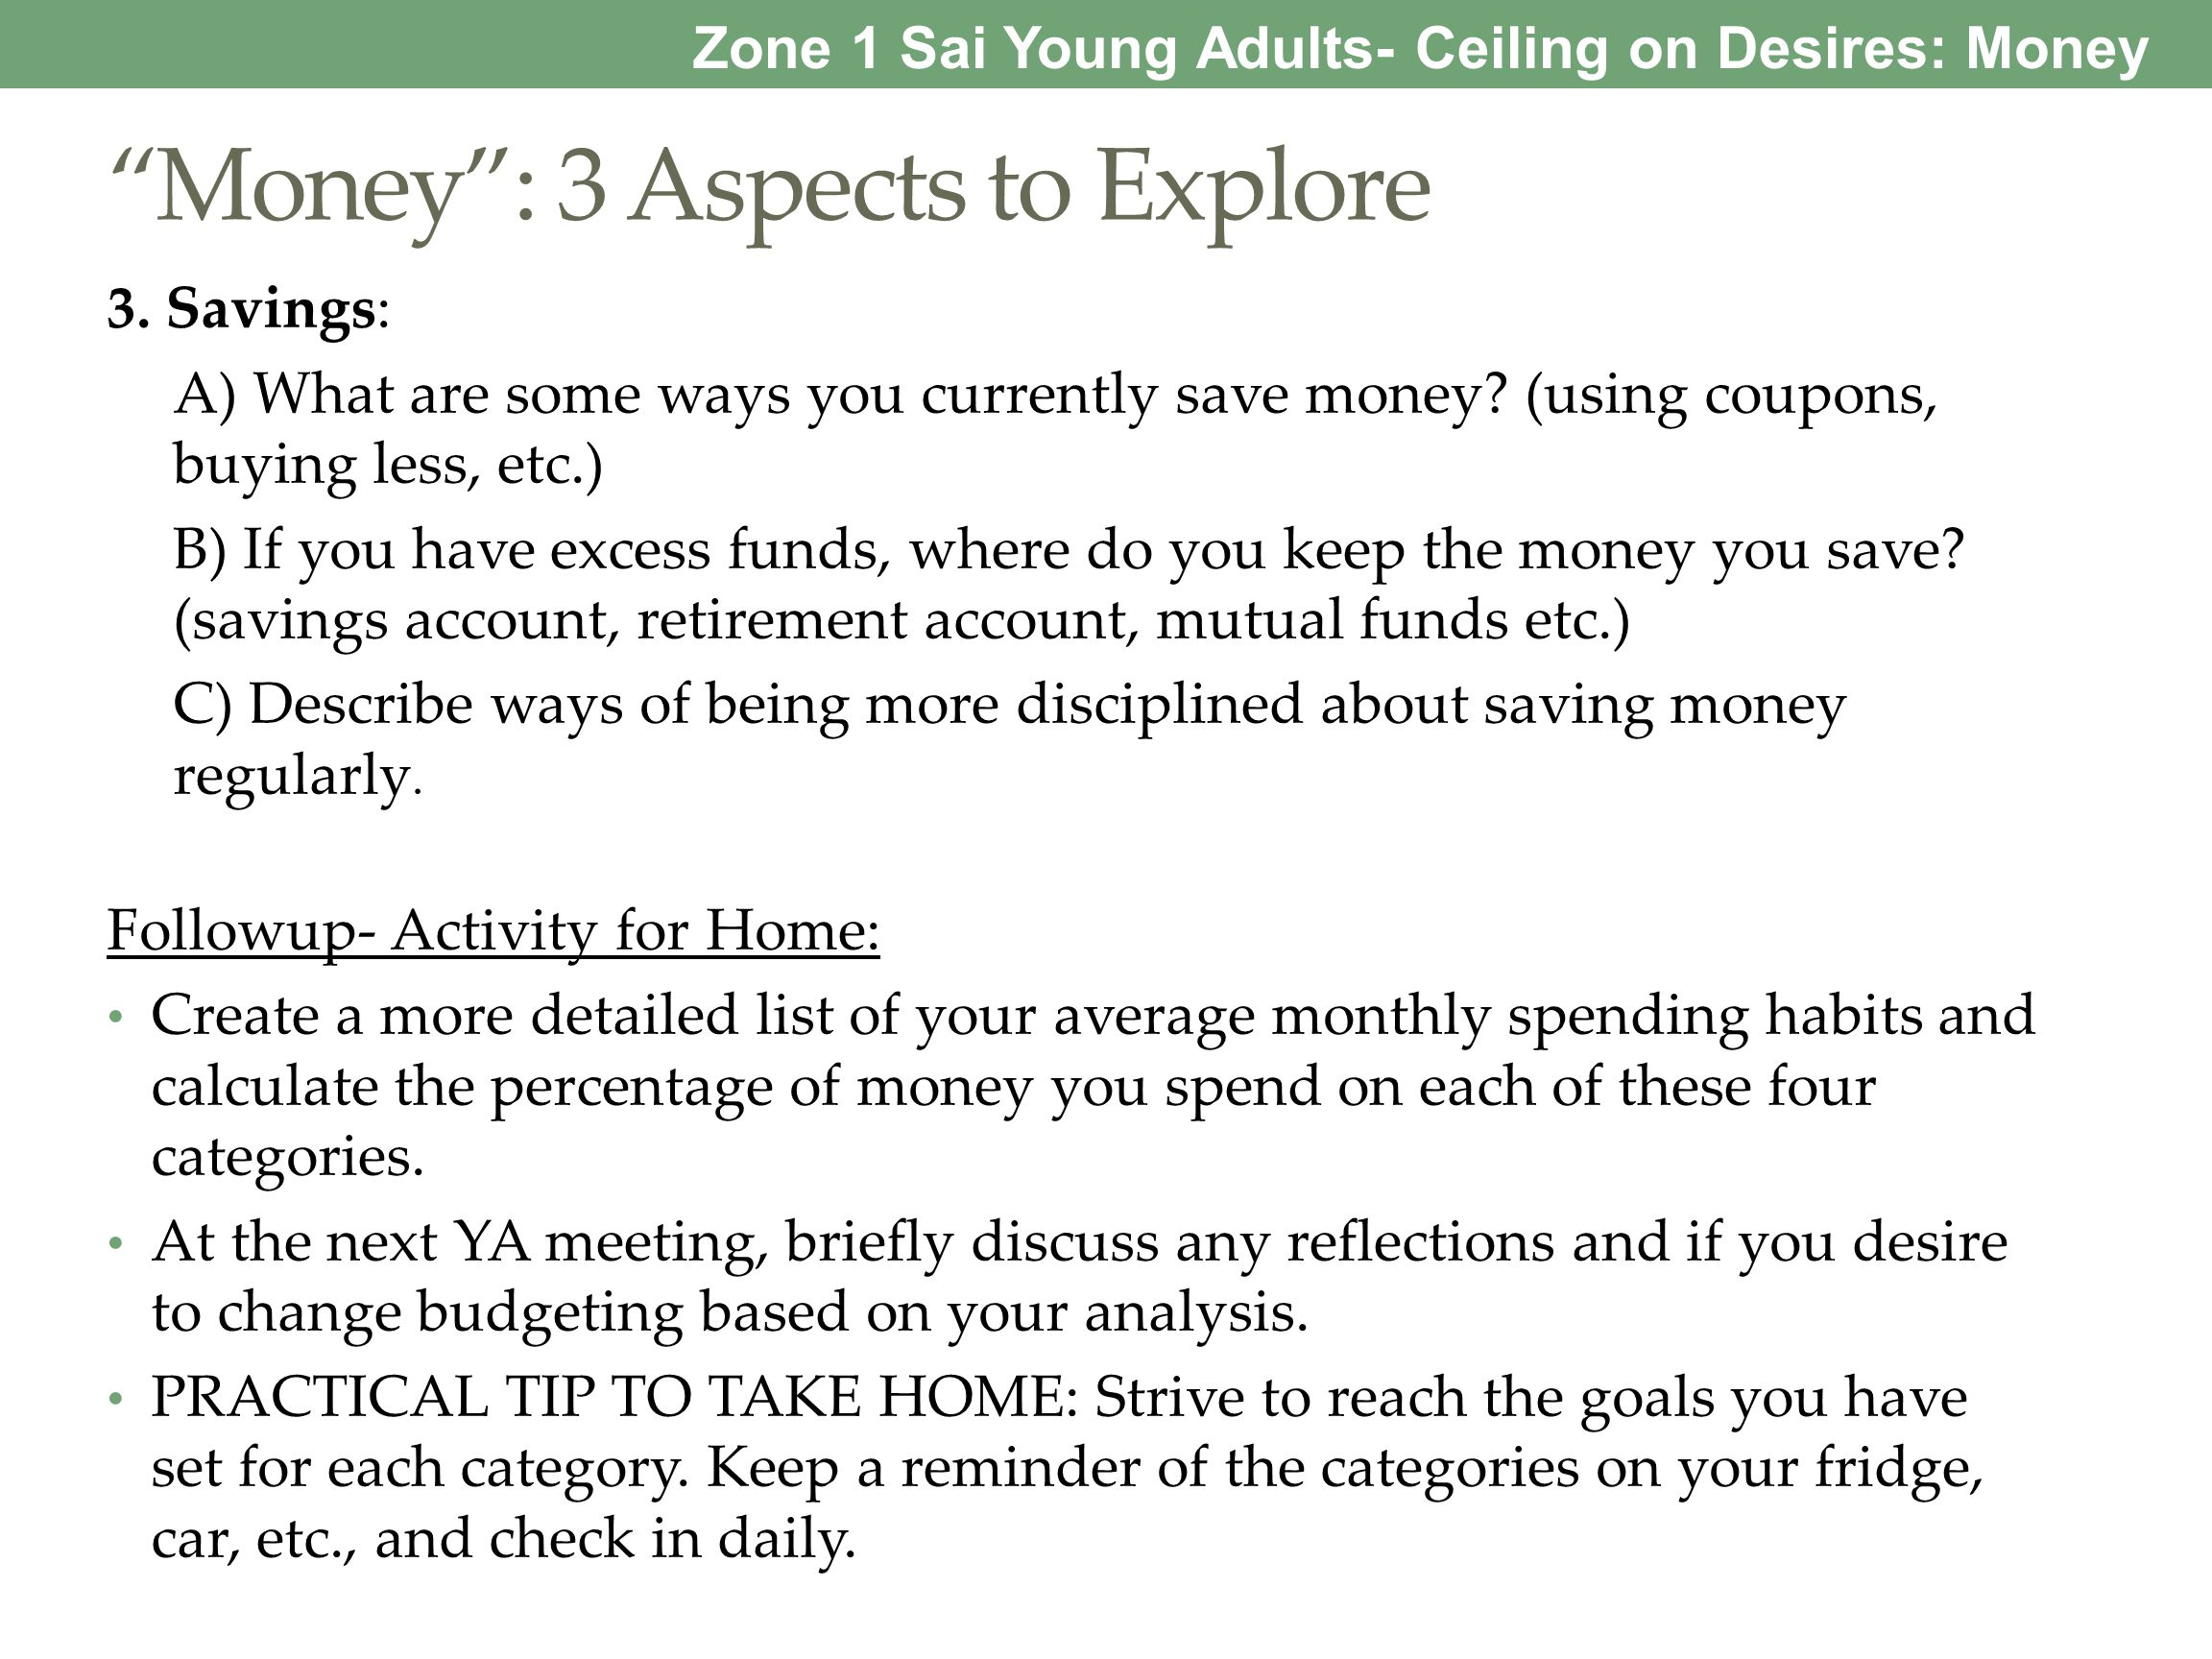 Money: 3 Aspects to Explore 3. Savings: A) What are some ways you currently save money? (using coupons, buying less, etc.) B) If you have excess funds